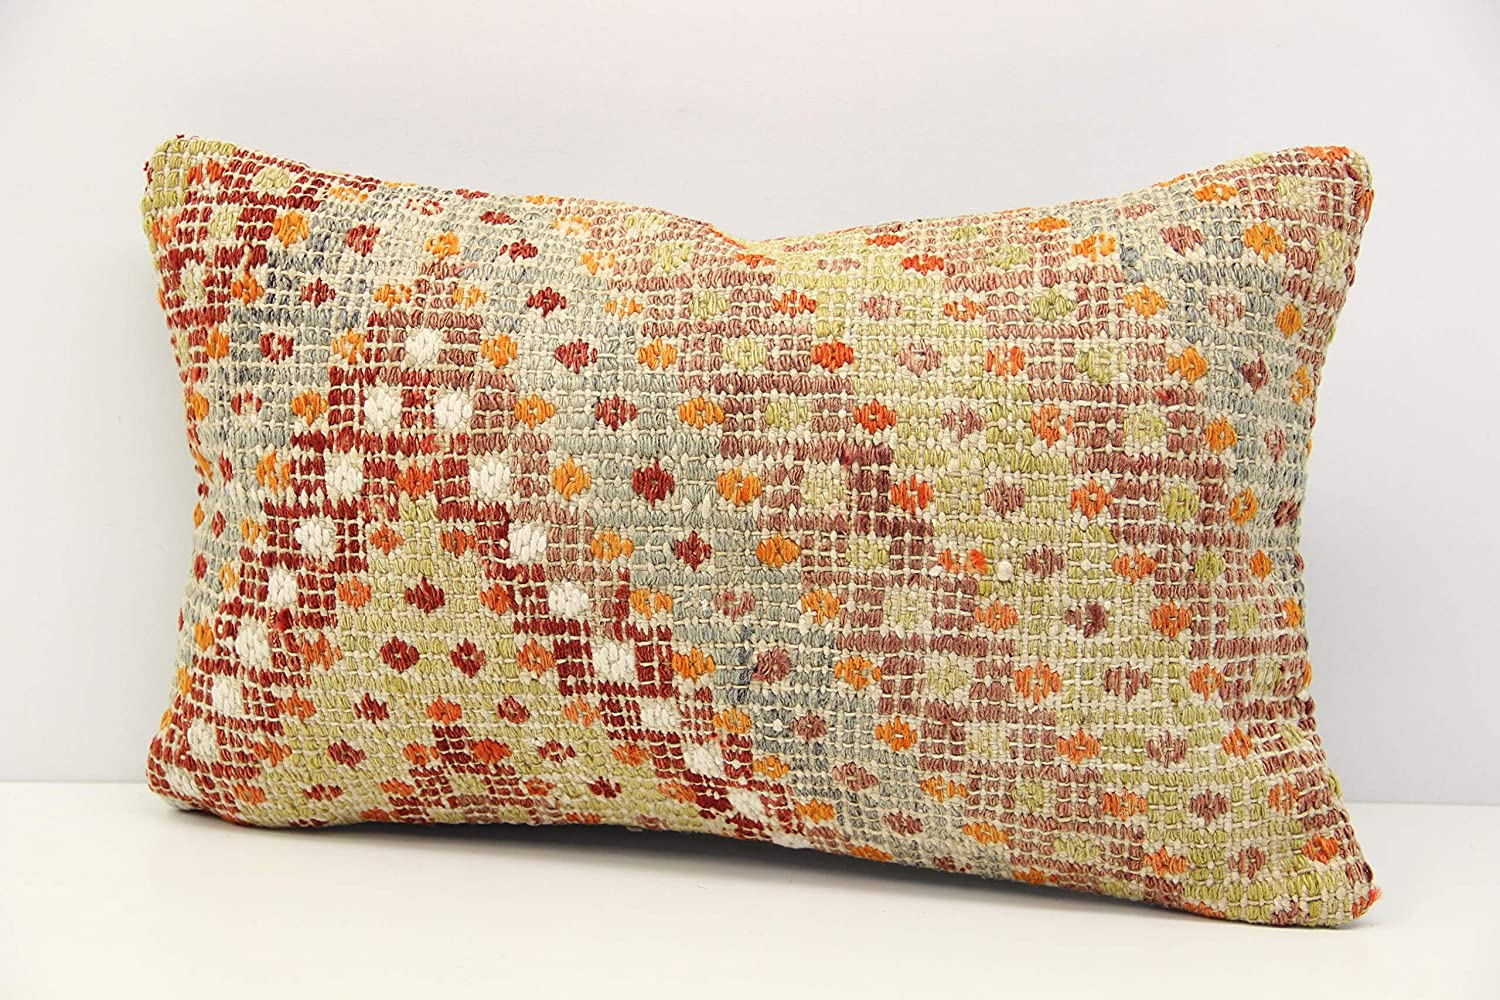 Amazon.com: Modern kilim pillow cover 12x20 inch (30x50 cm ...